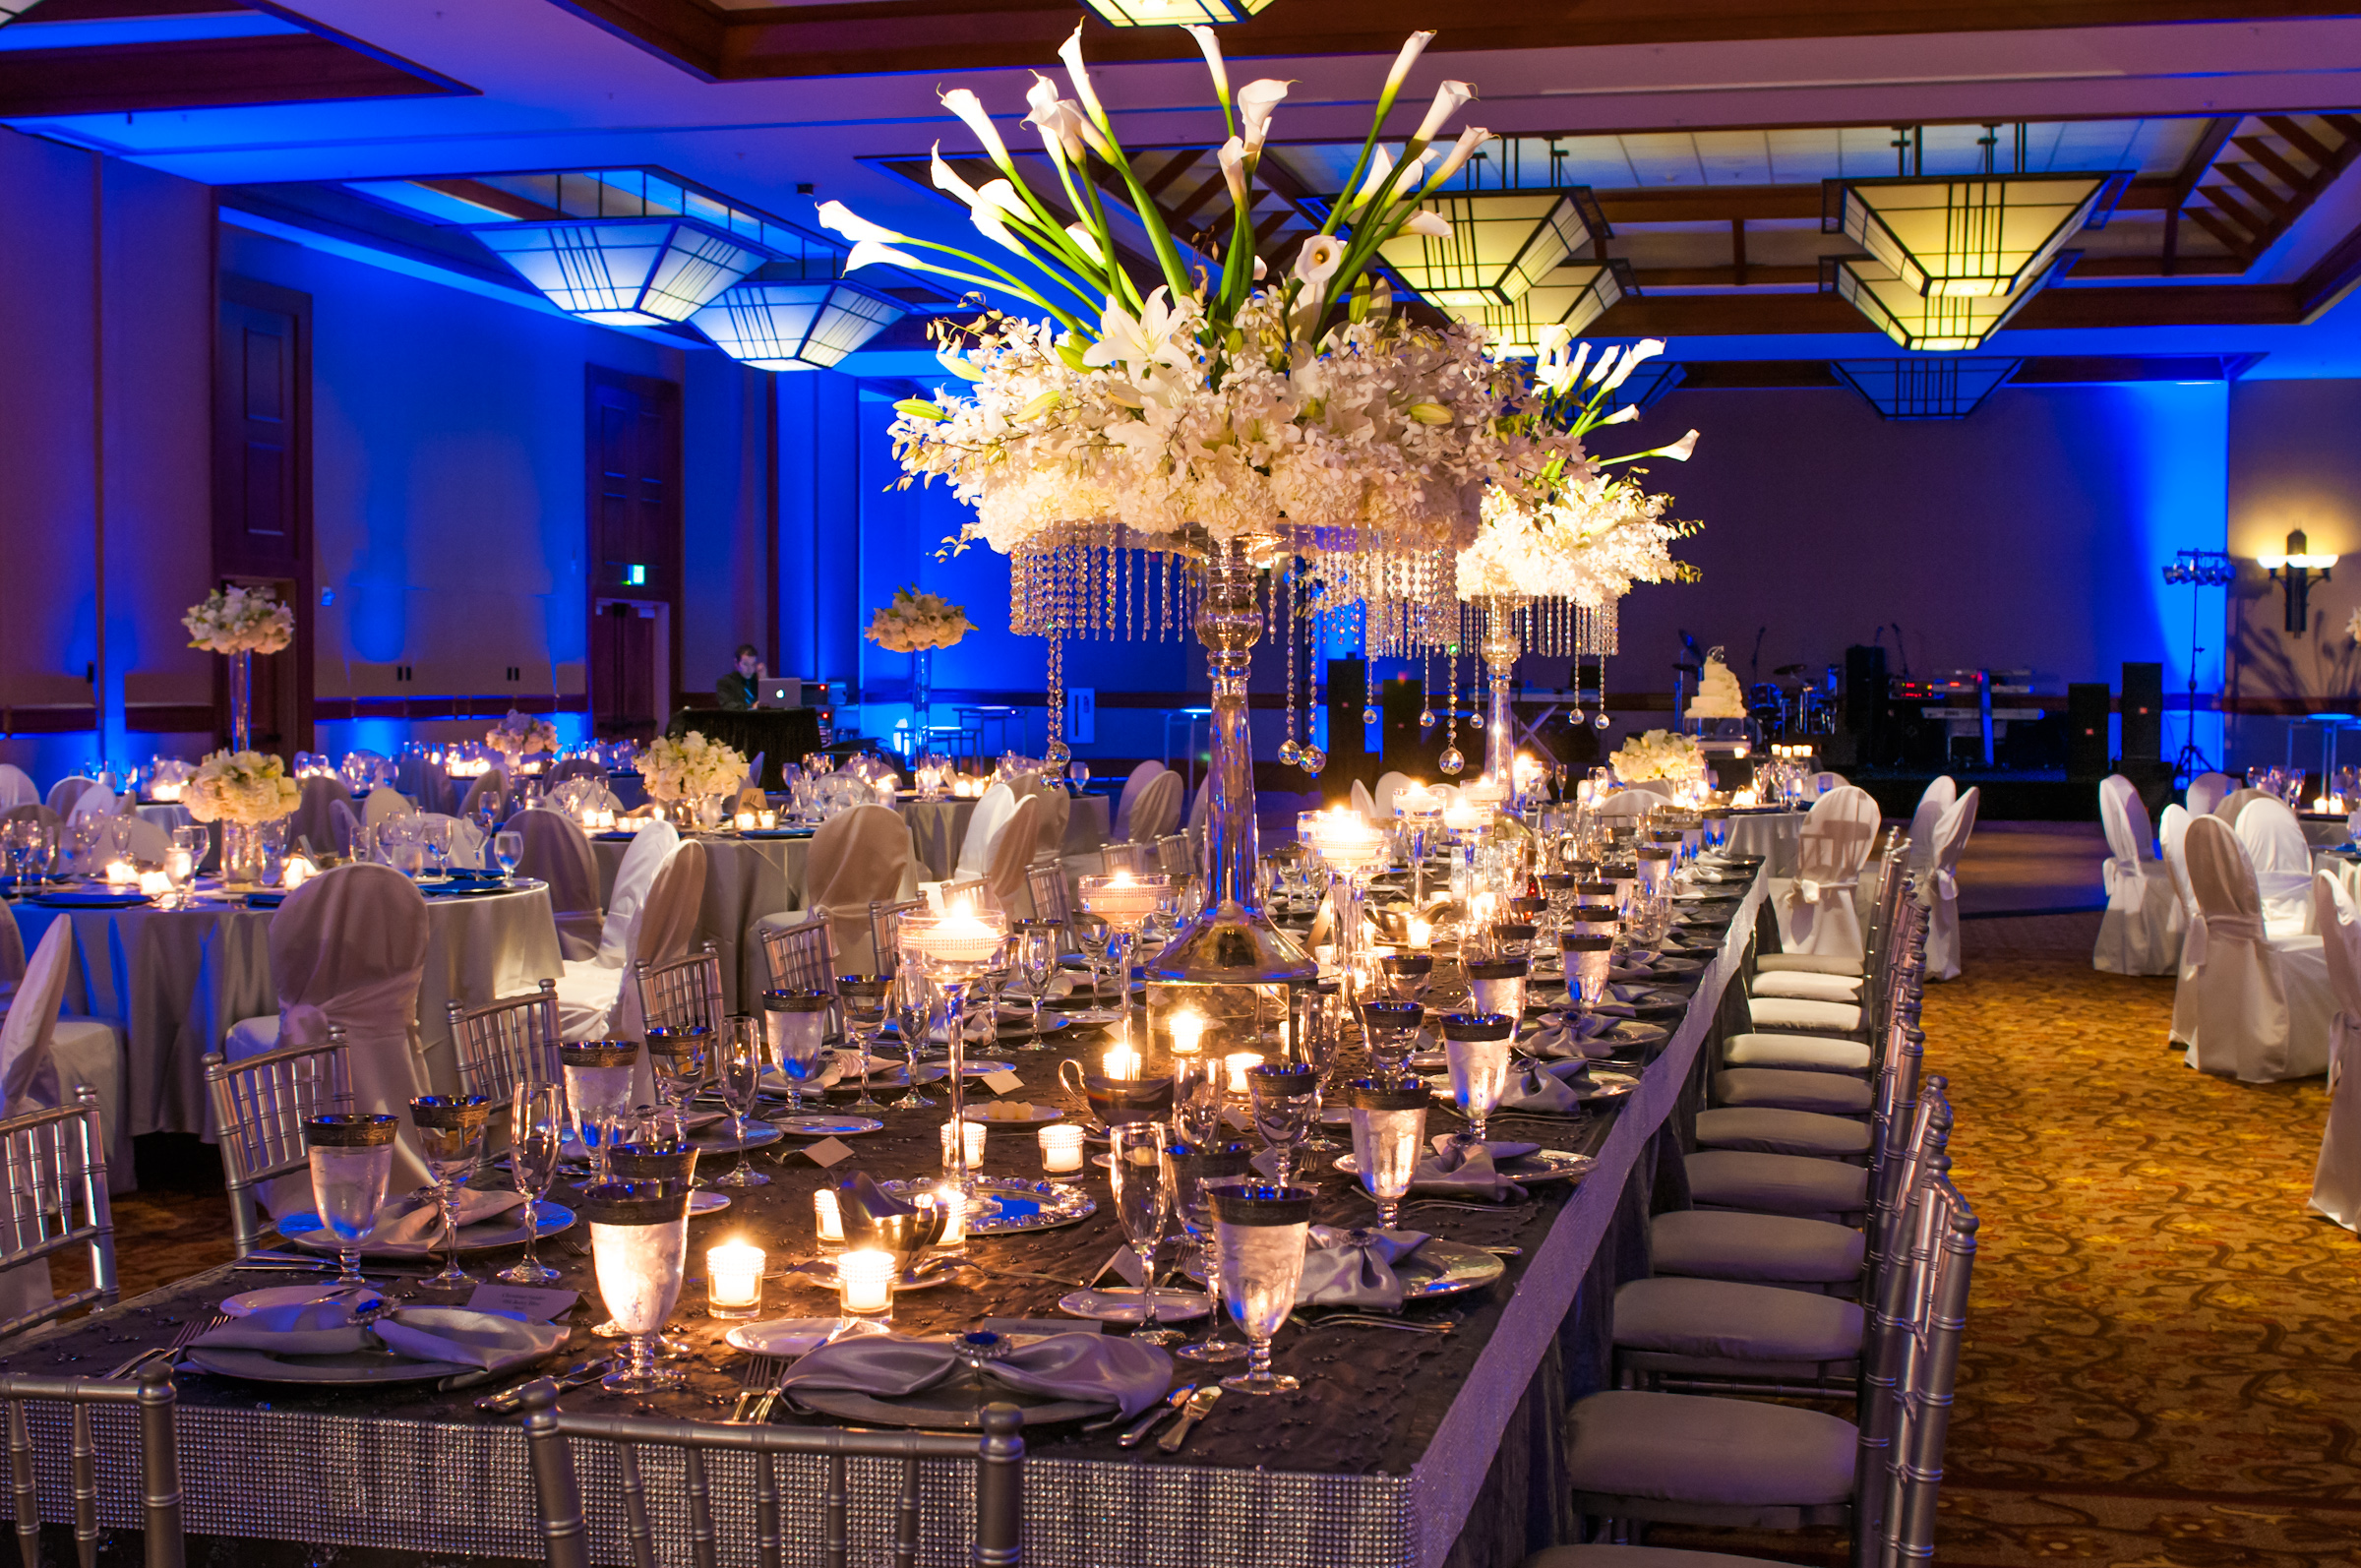 Photo long table flower centerpieces images wedding centerpieces square rectangular table ideas and top displays linen rentals junglespirit Choice Image